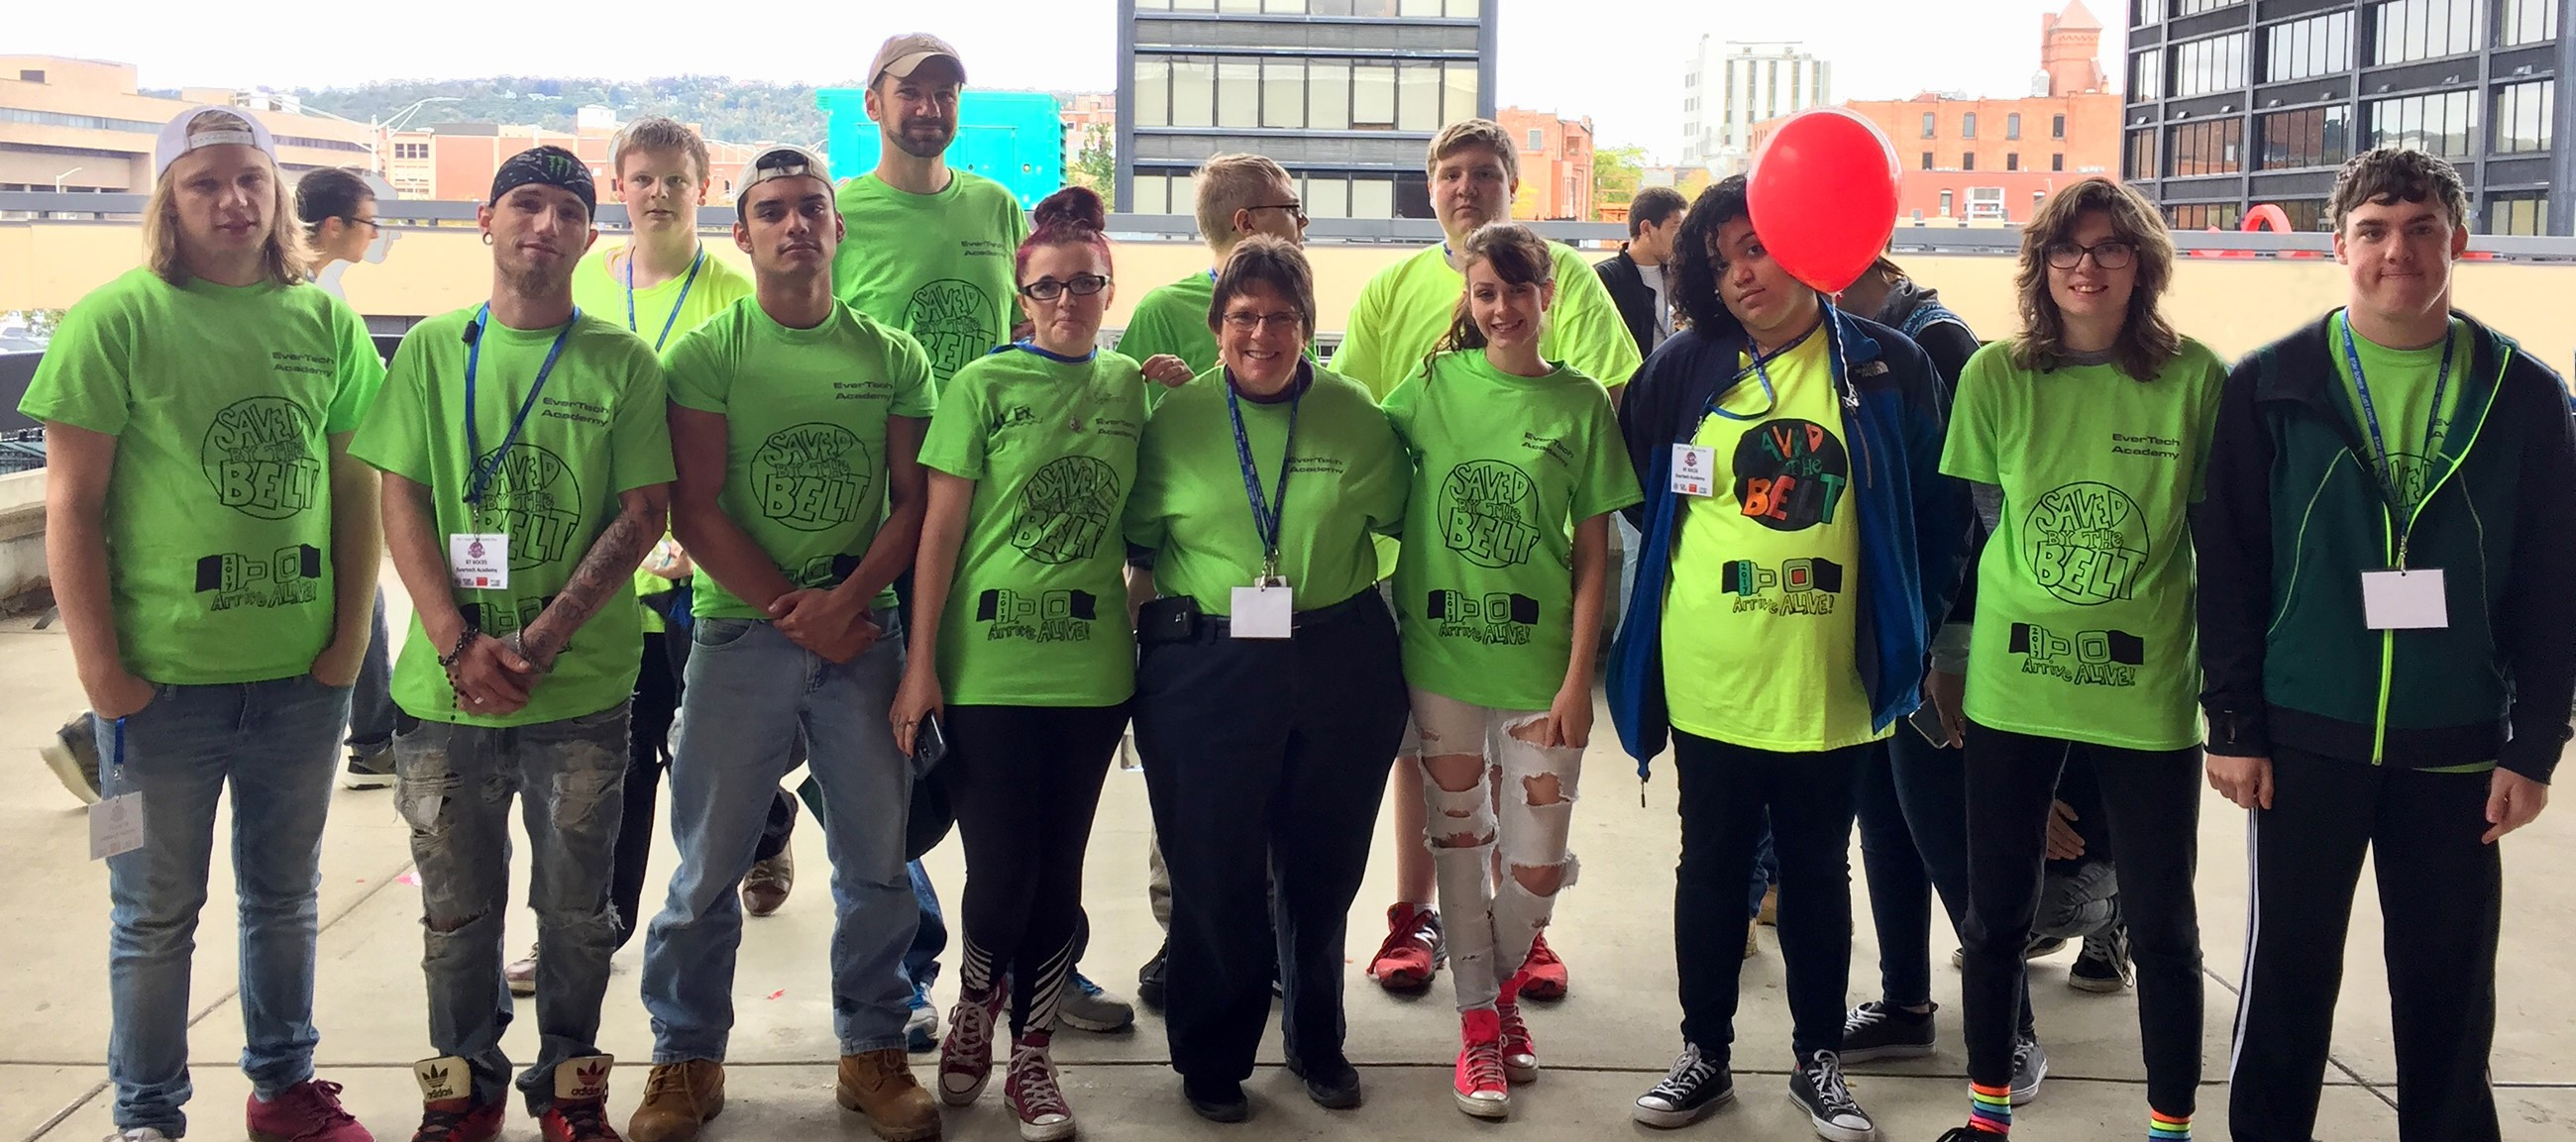 Evertech T-shirt design voted best at Teen Traffic Safety Day